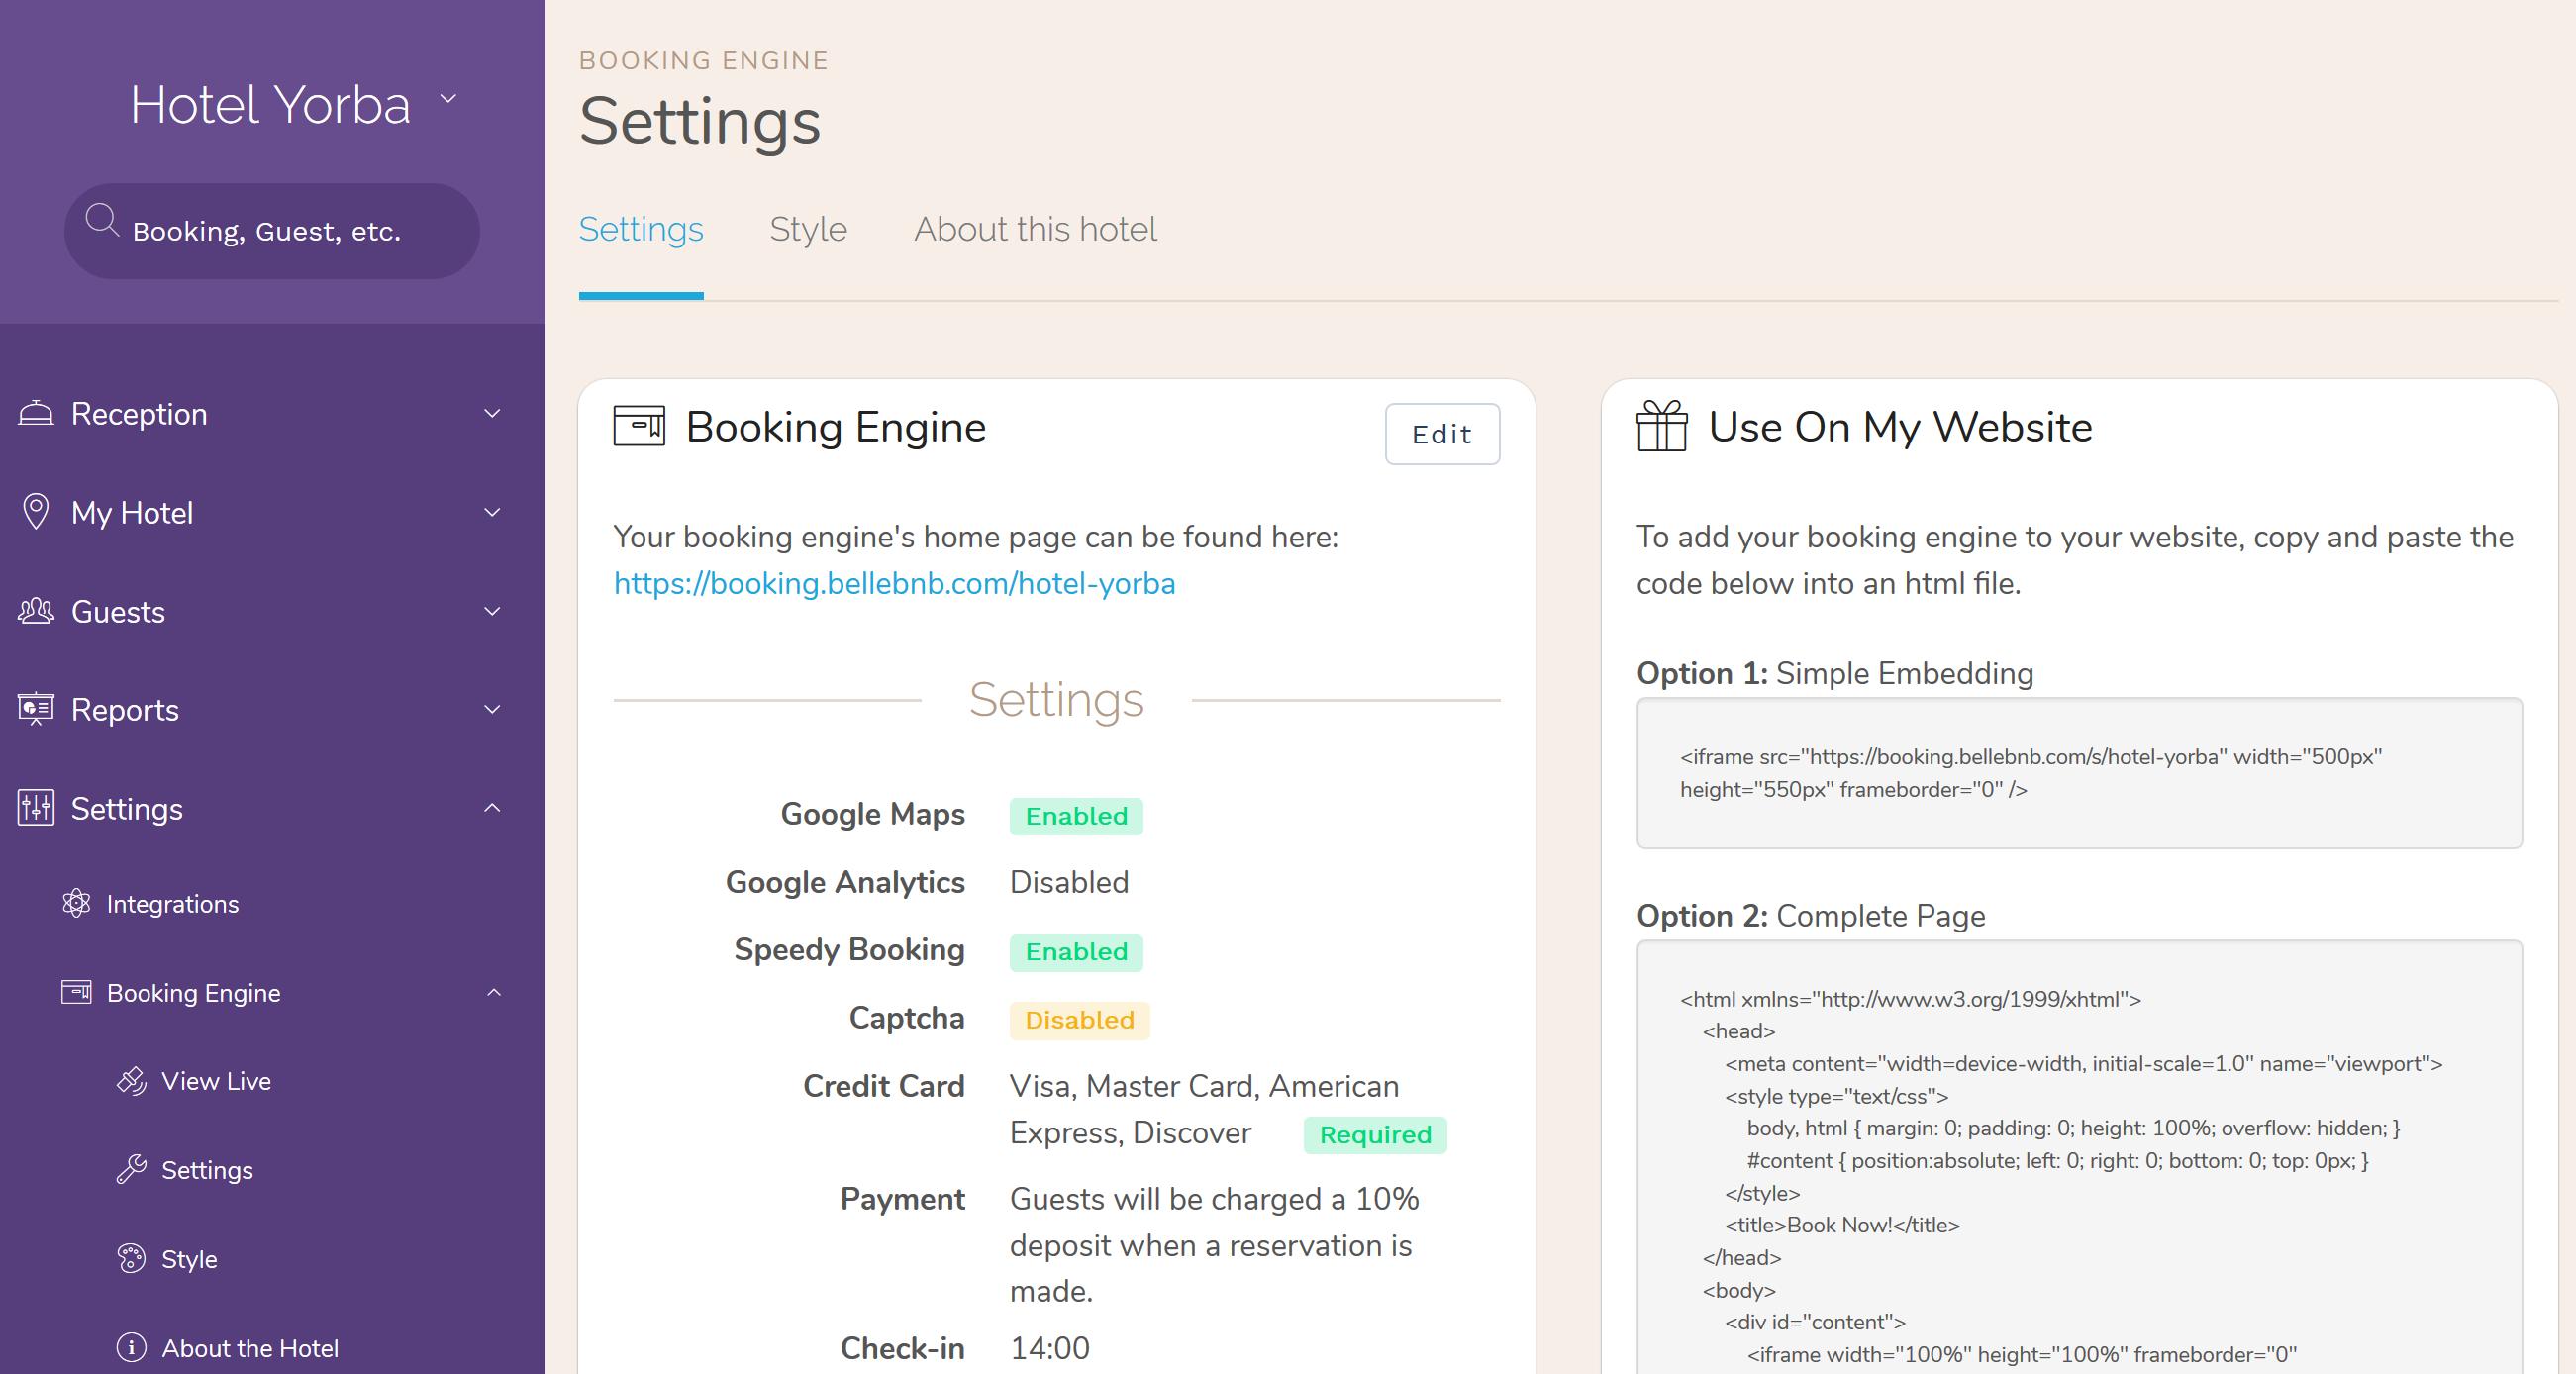 You now have Speedy Bookings enabled in your Booking Engine.